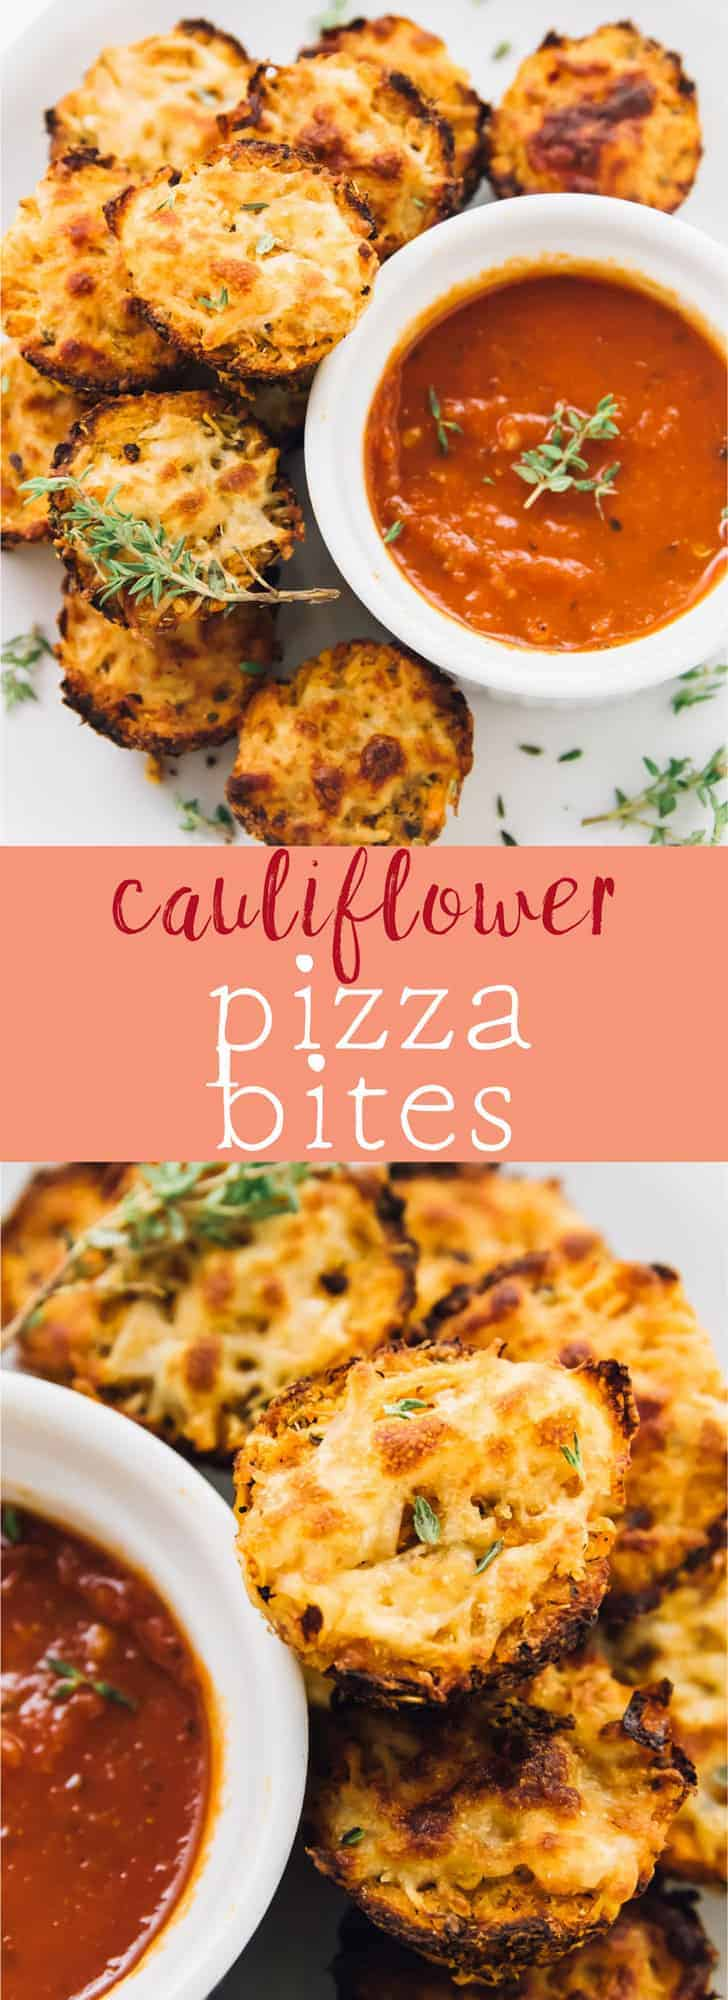 These Cauliflower Pizza Bites will satisfy your pizza cravings! Everyone from kids to college students love them, and they are low carb! via https://jessicainthekitchen.com